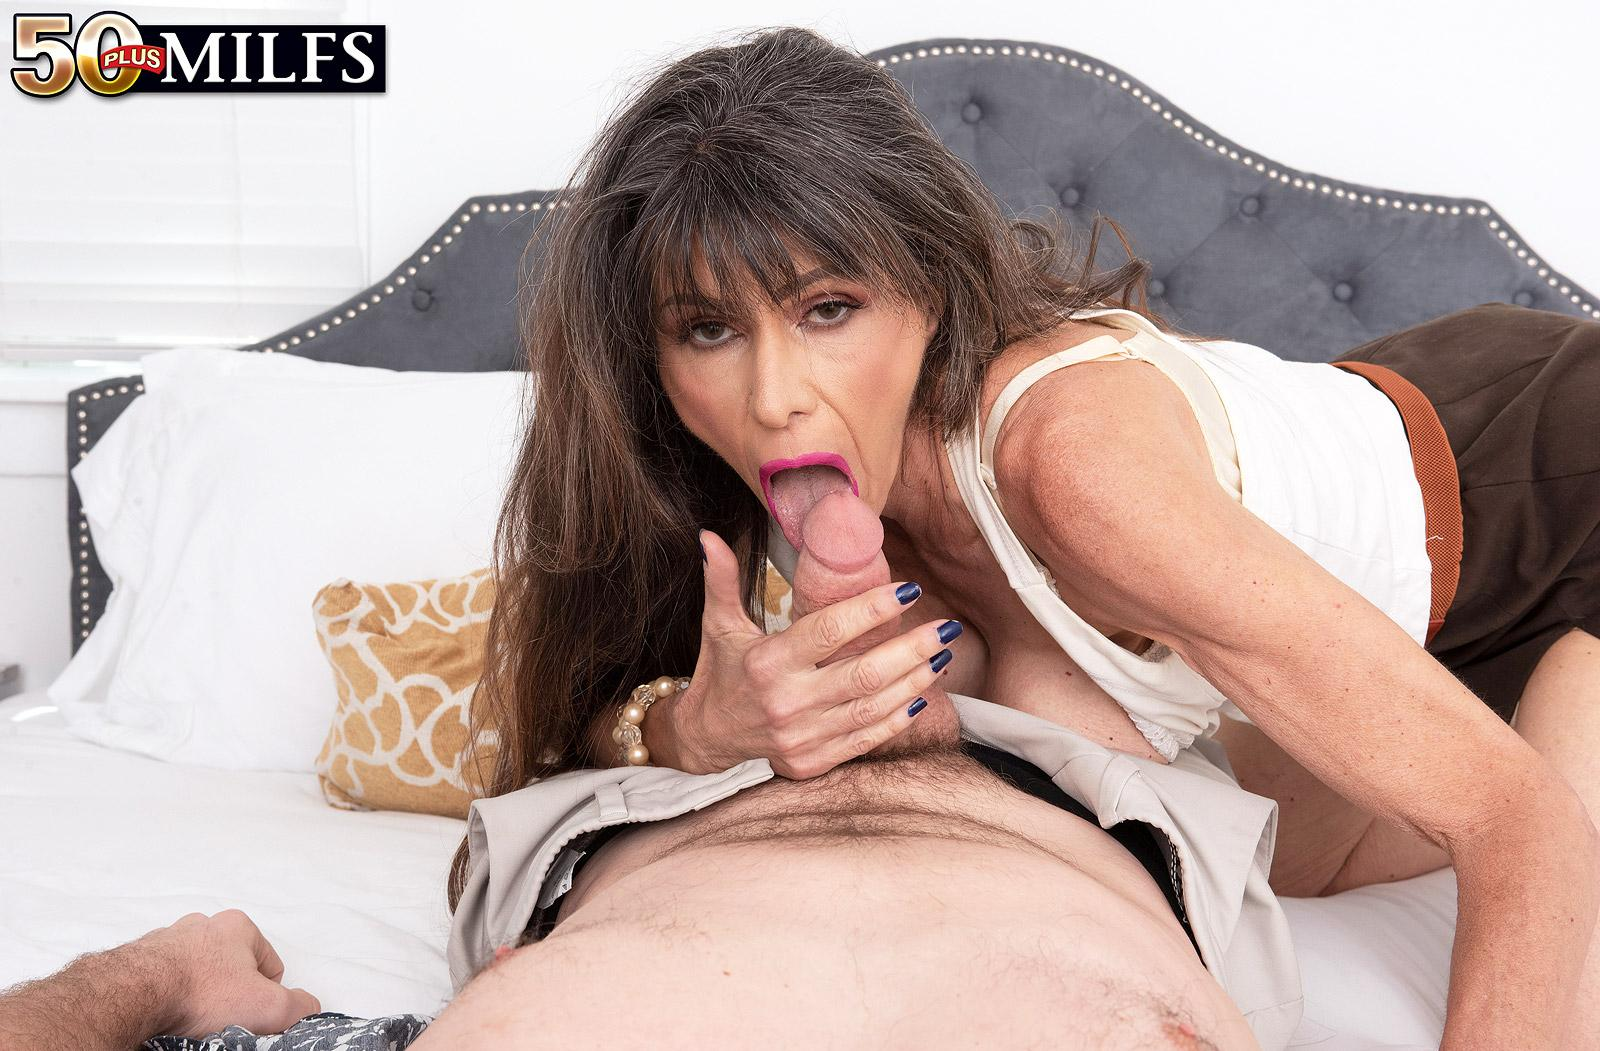 skinny, slightly scrawny and athletic older women  demands hard anal from her young admire picture 15